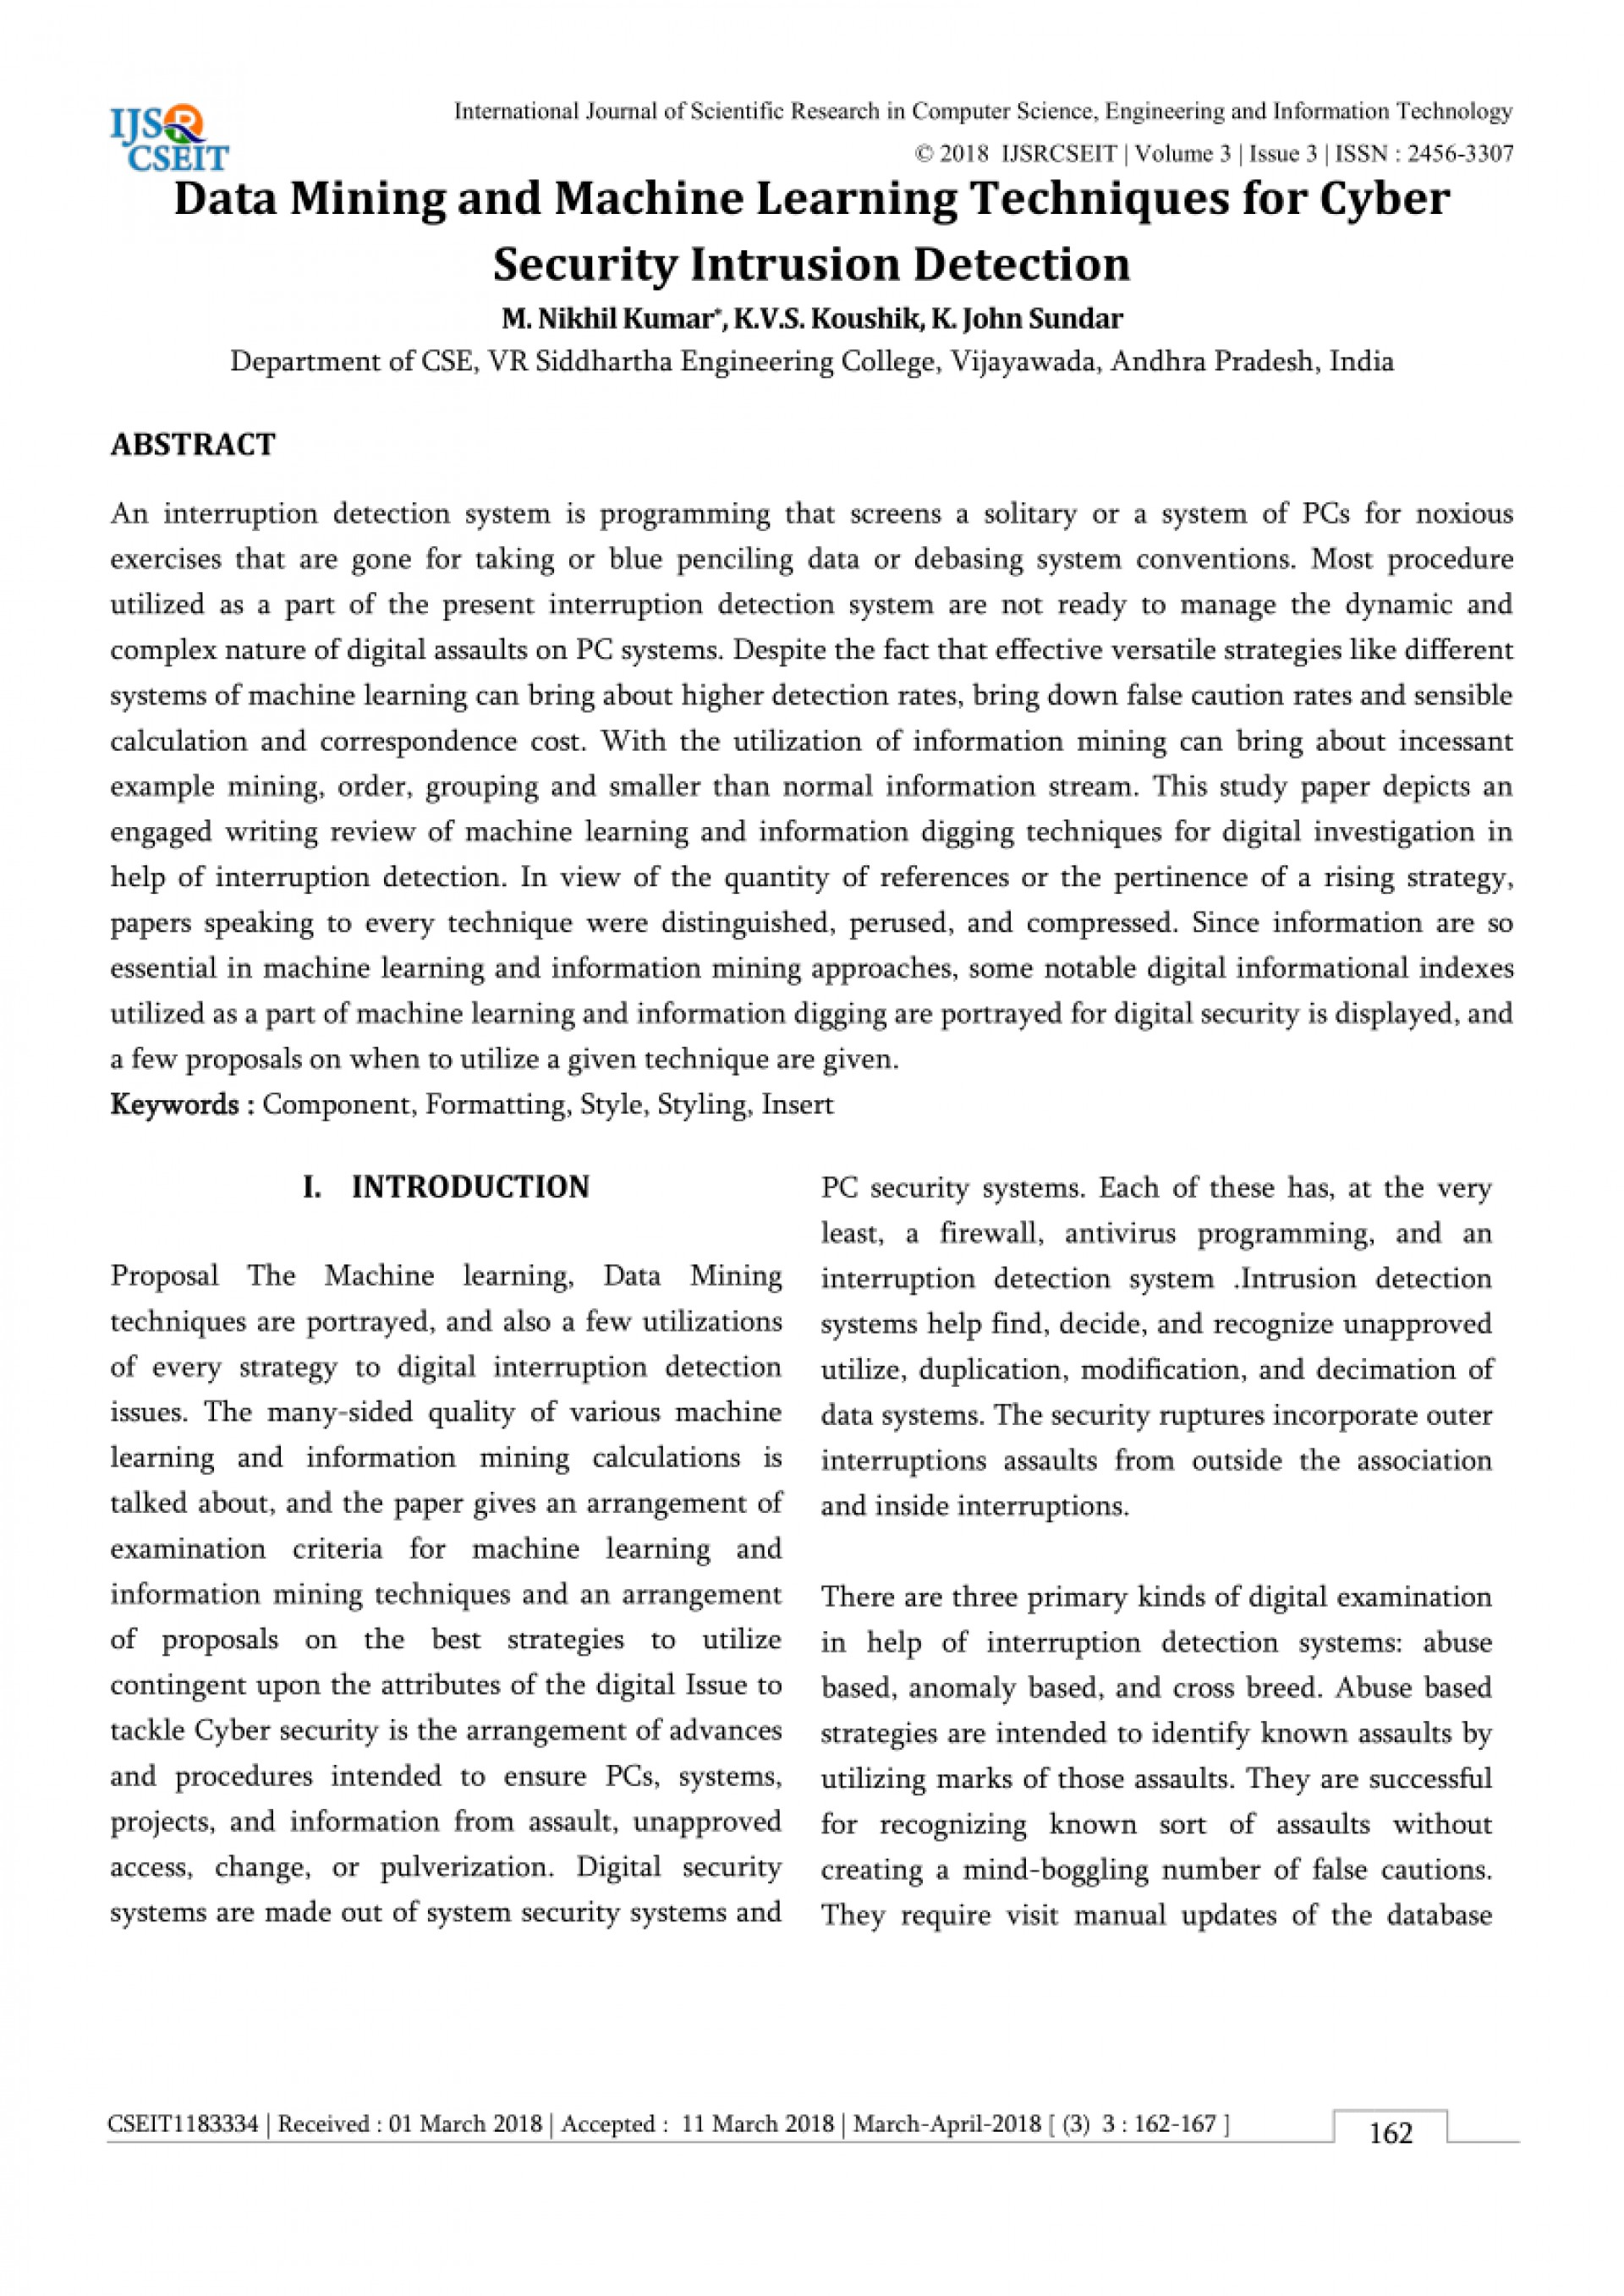 003 Research Paper Cyber Security Ieee Wondrous 1920